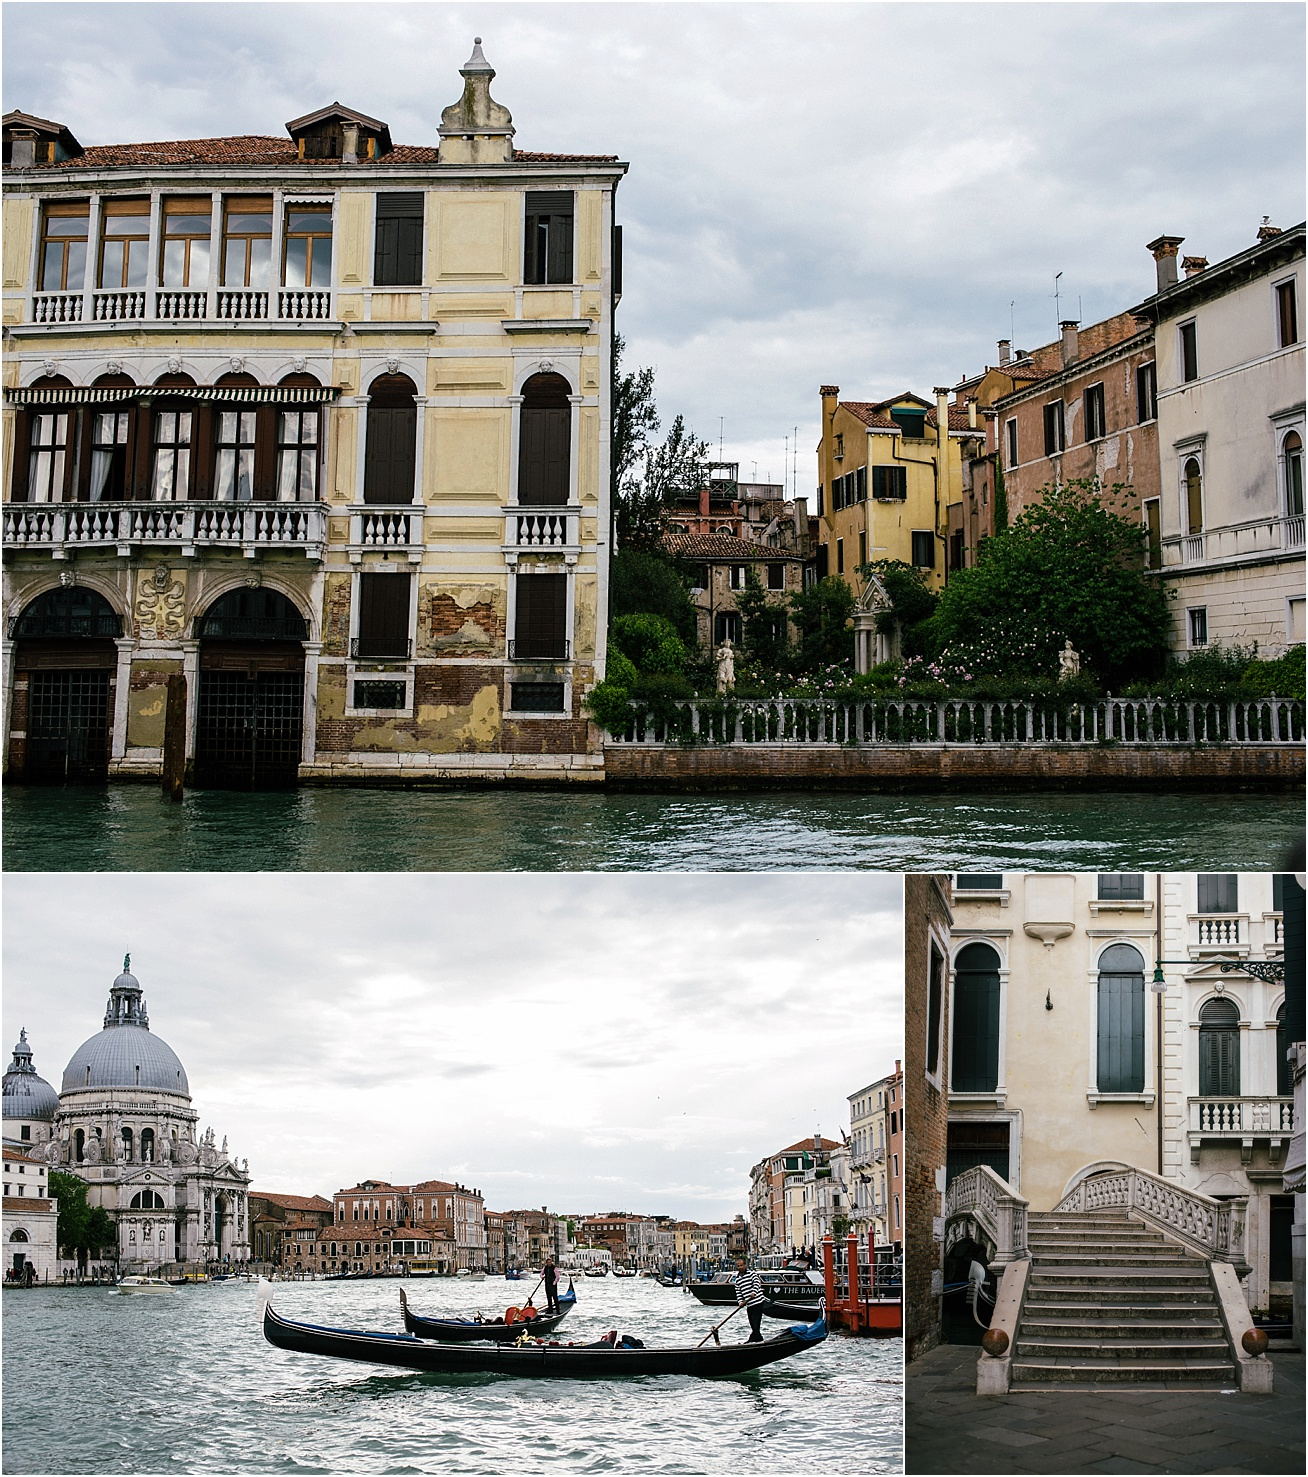 Travelling to Venice, Italy